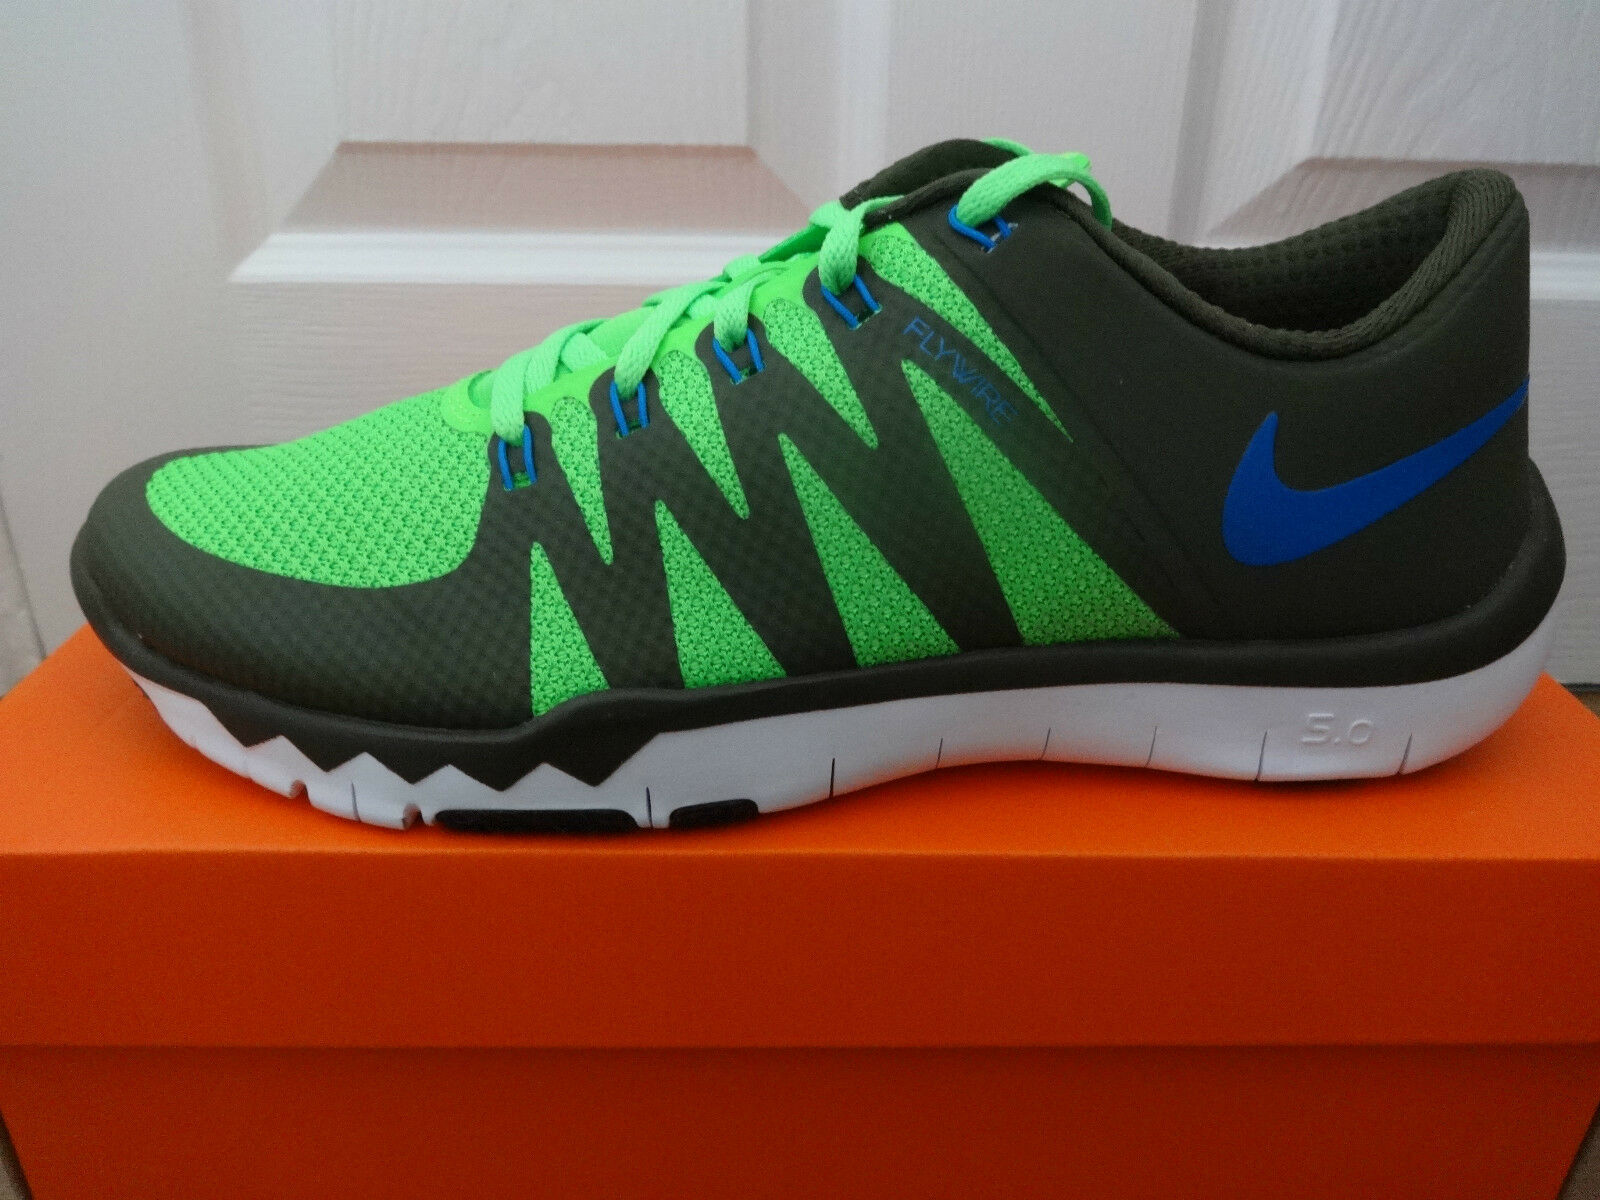 Nike free trainer homme 5.0 V6 homme trainer  running trainers Baskets 719922 343 new in box 69af60